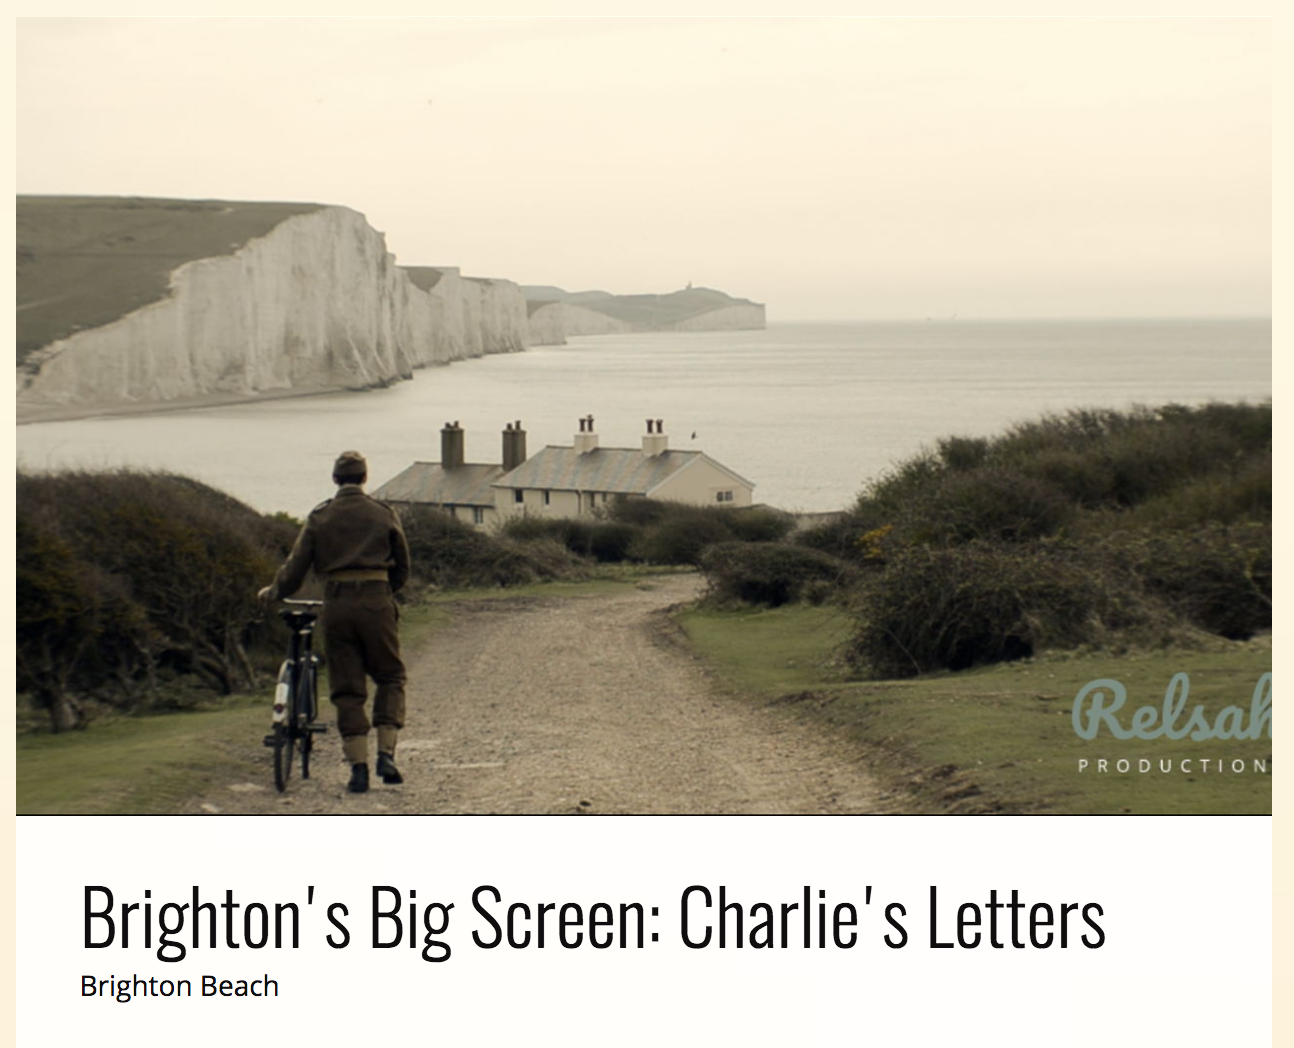 Announcing Charlie's Letters to air at Big Screen Brighton on August 11th